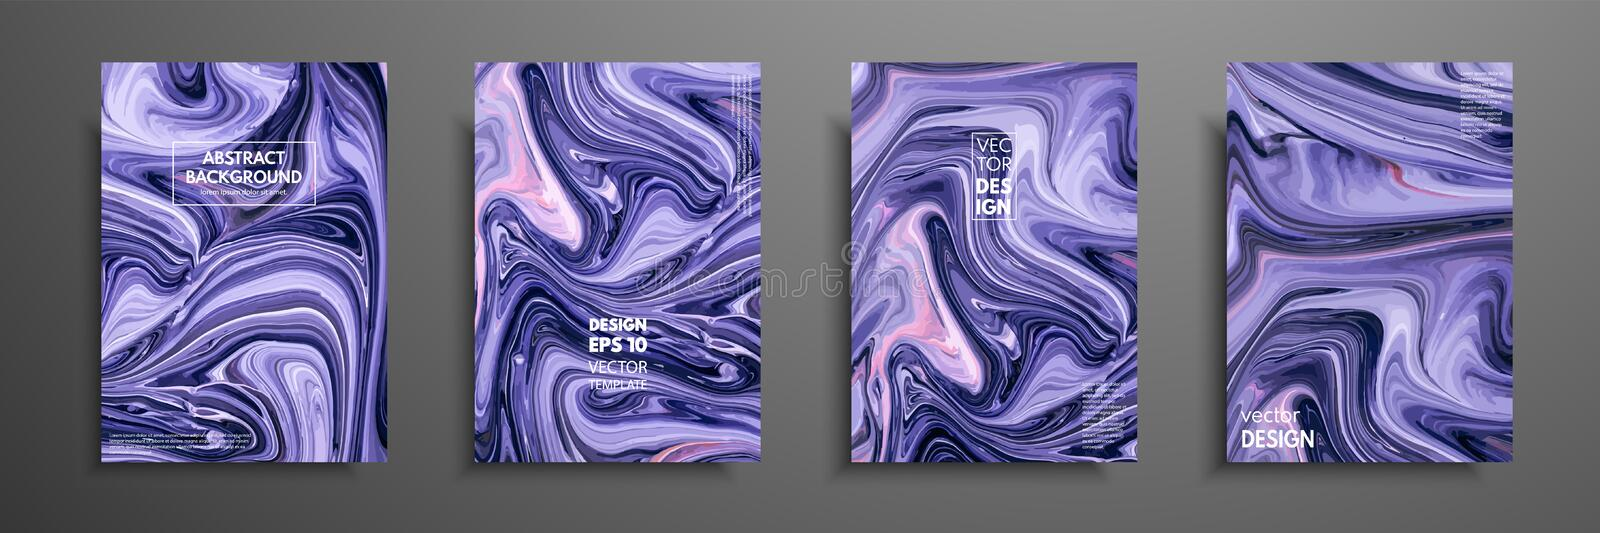 Mixture of acrylic paints. Modern artwork. Trendy design. Marble effect painting. Graphic hand drawn design for design vector illustration